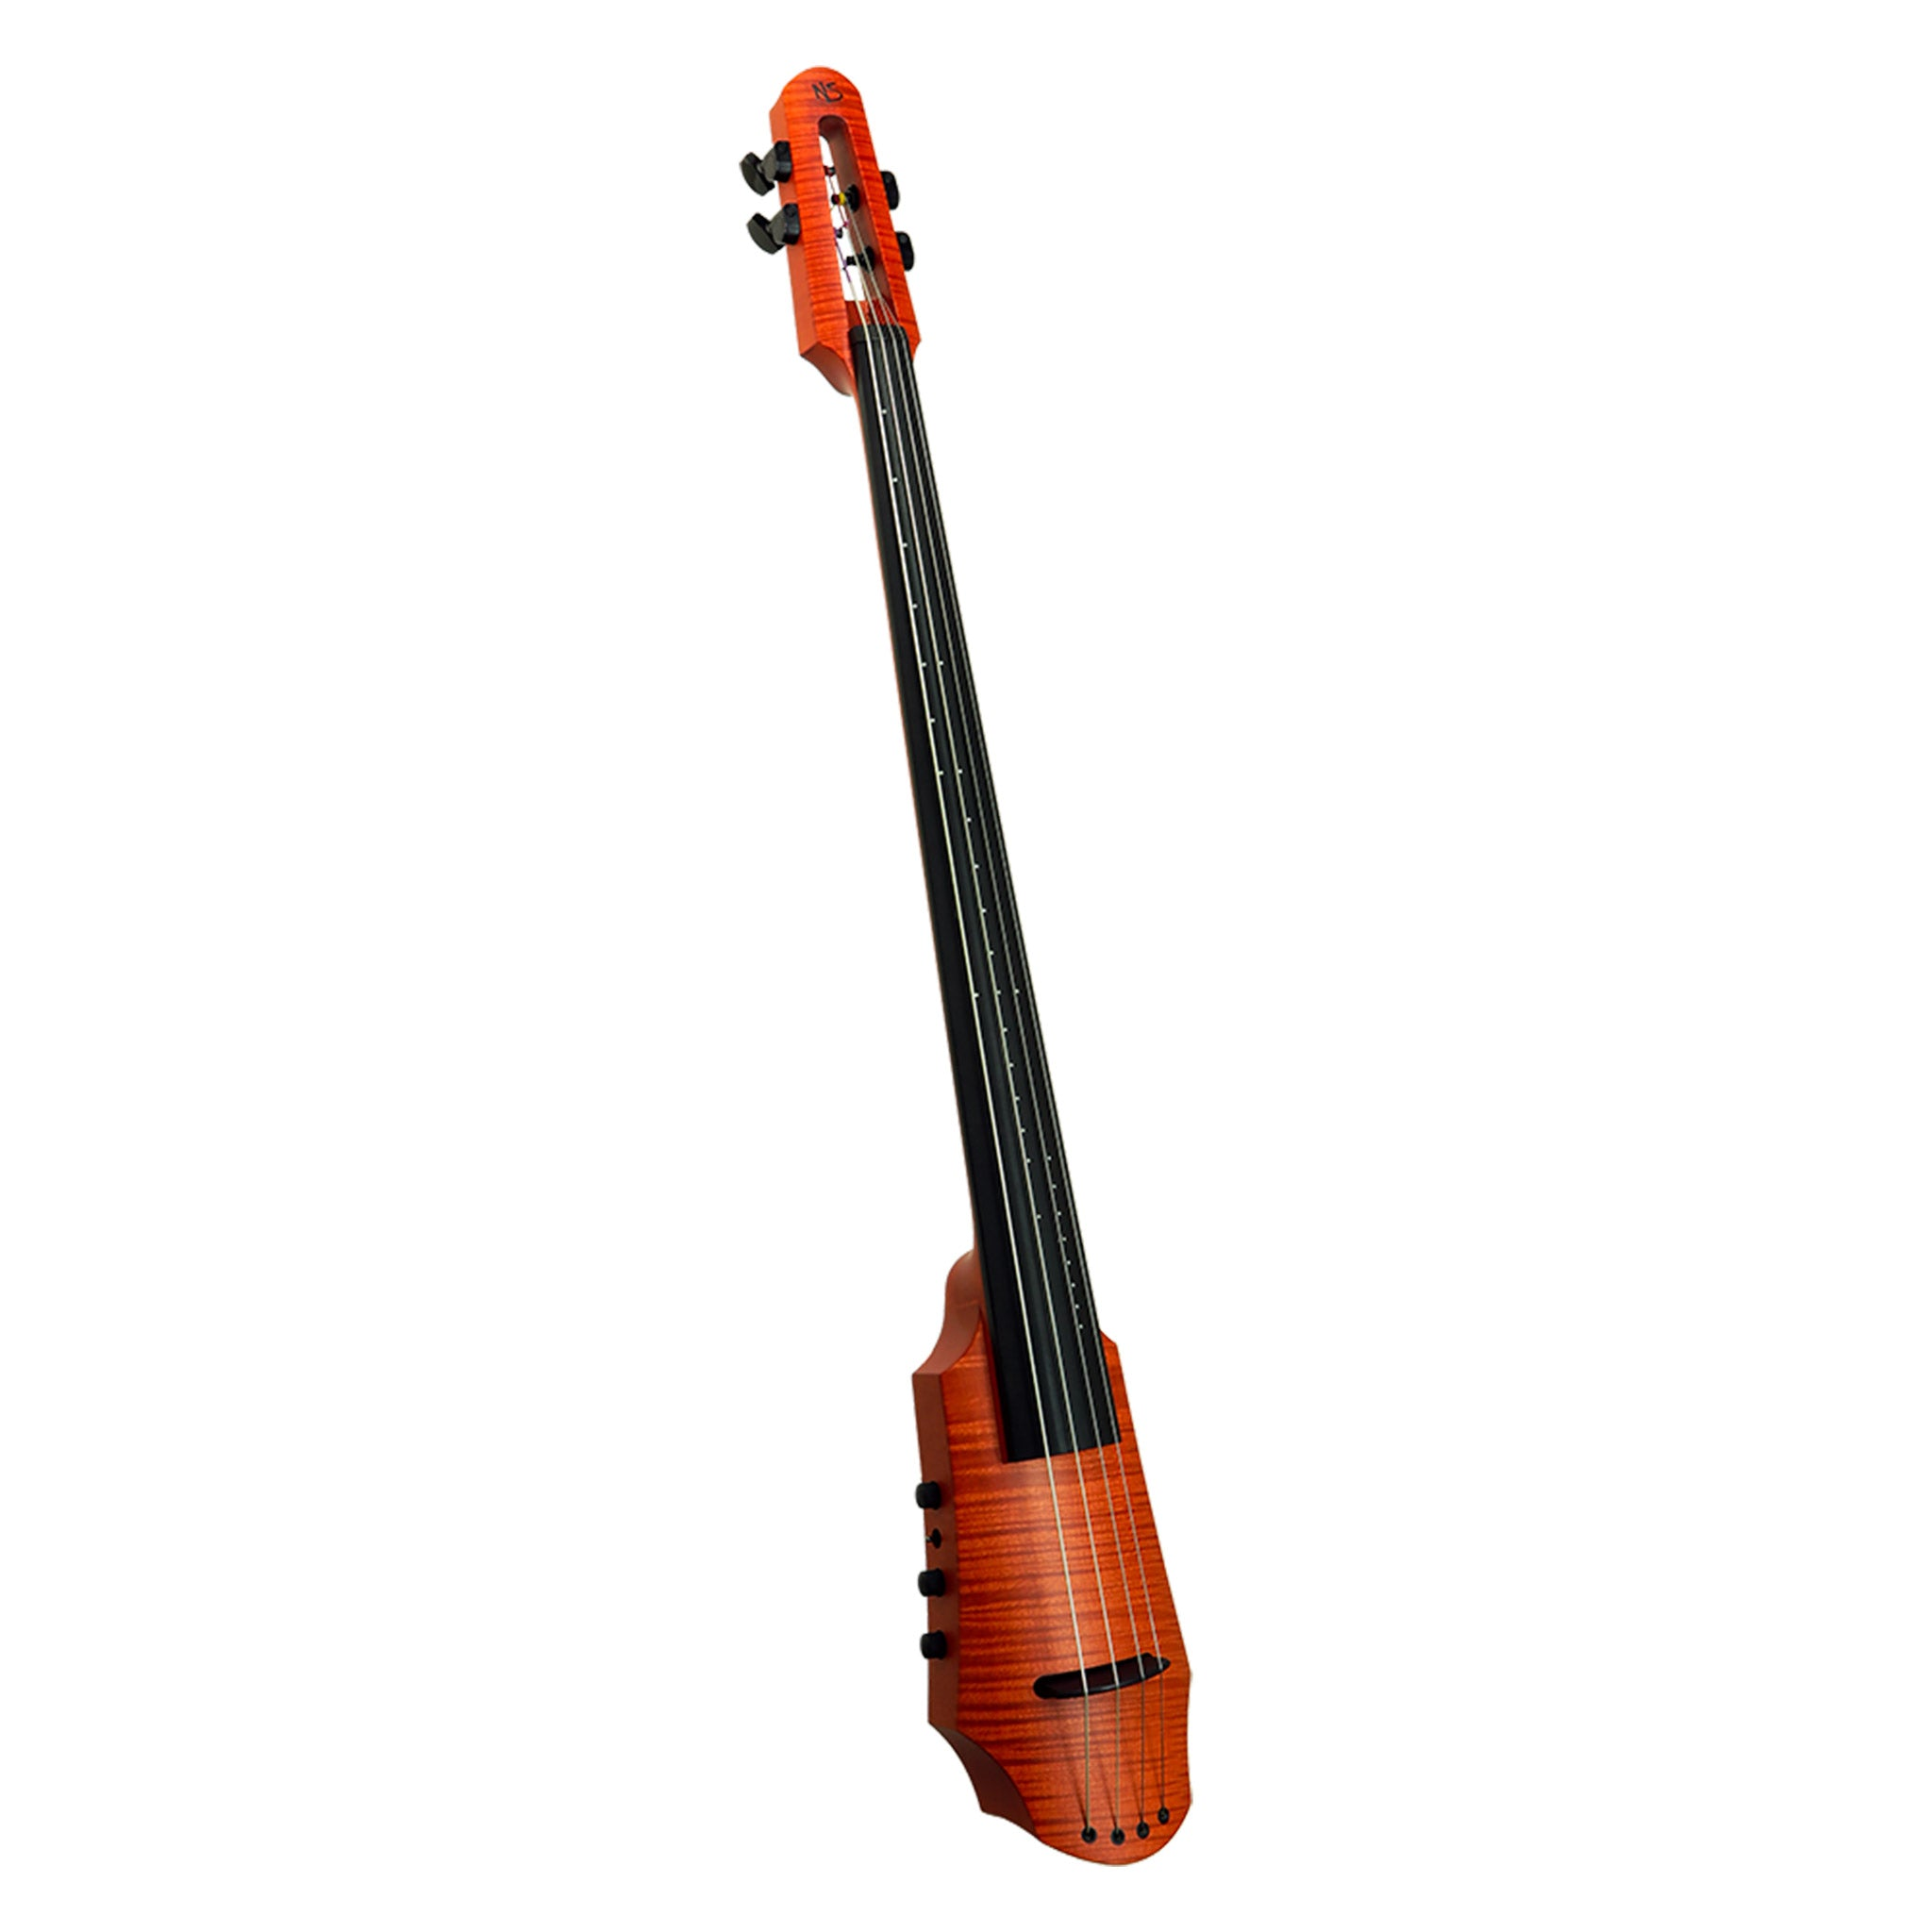 NS Design CR 4-string Electric Cello